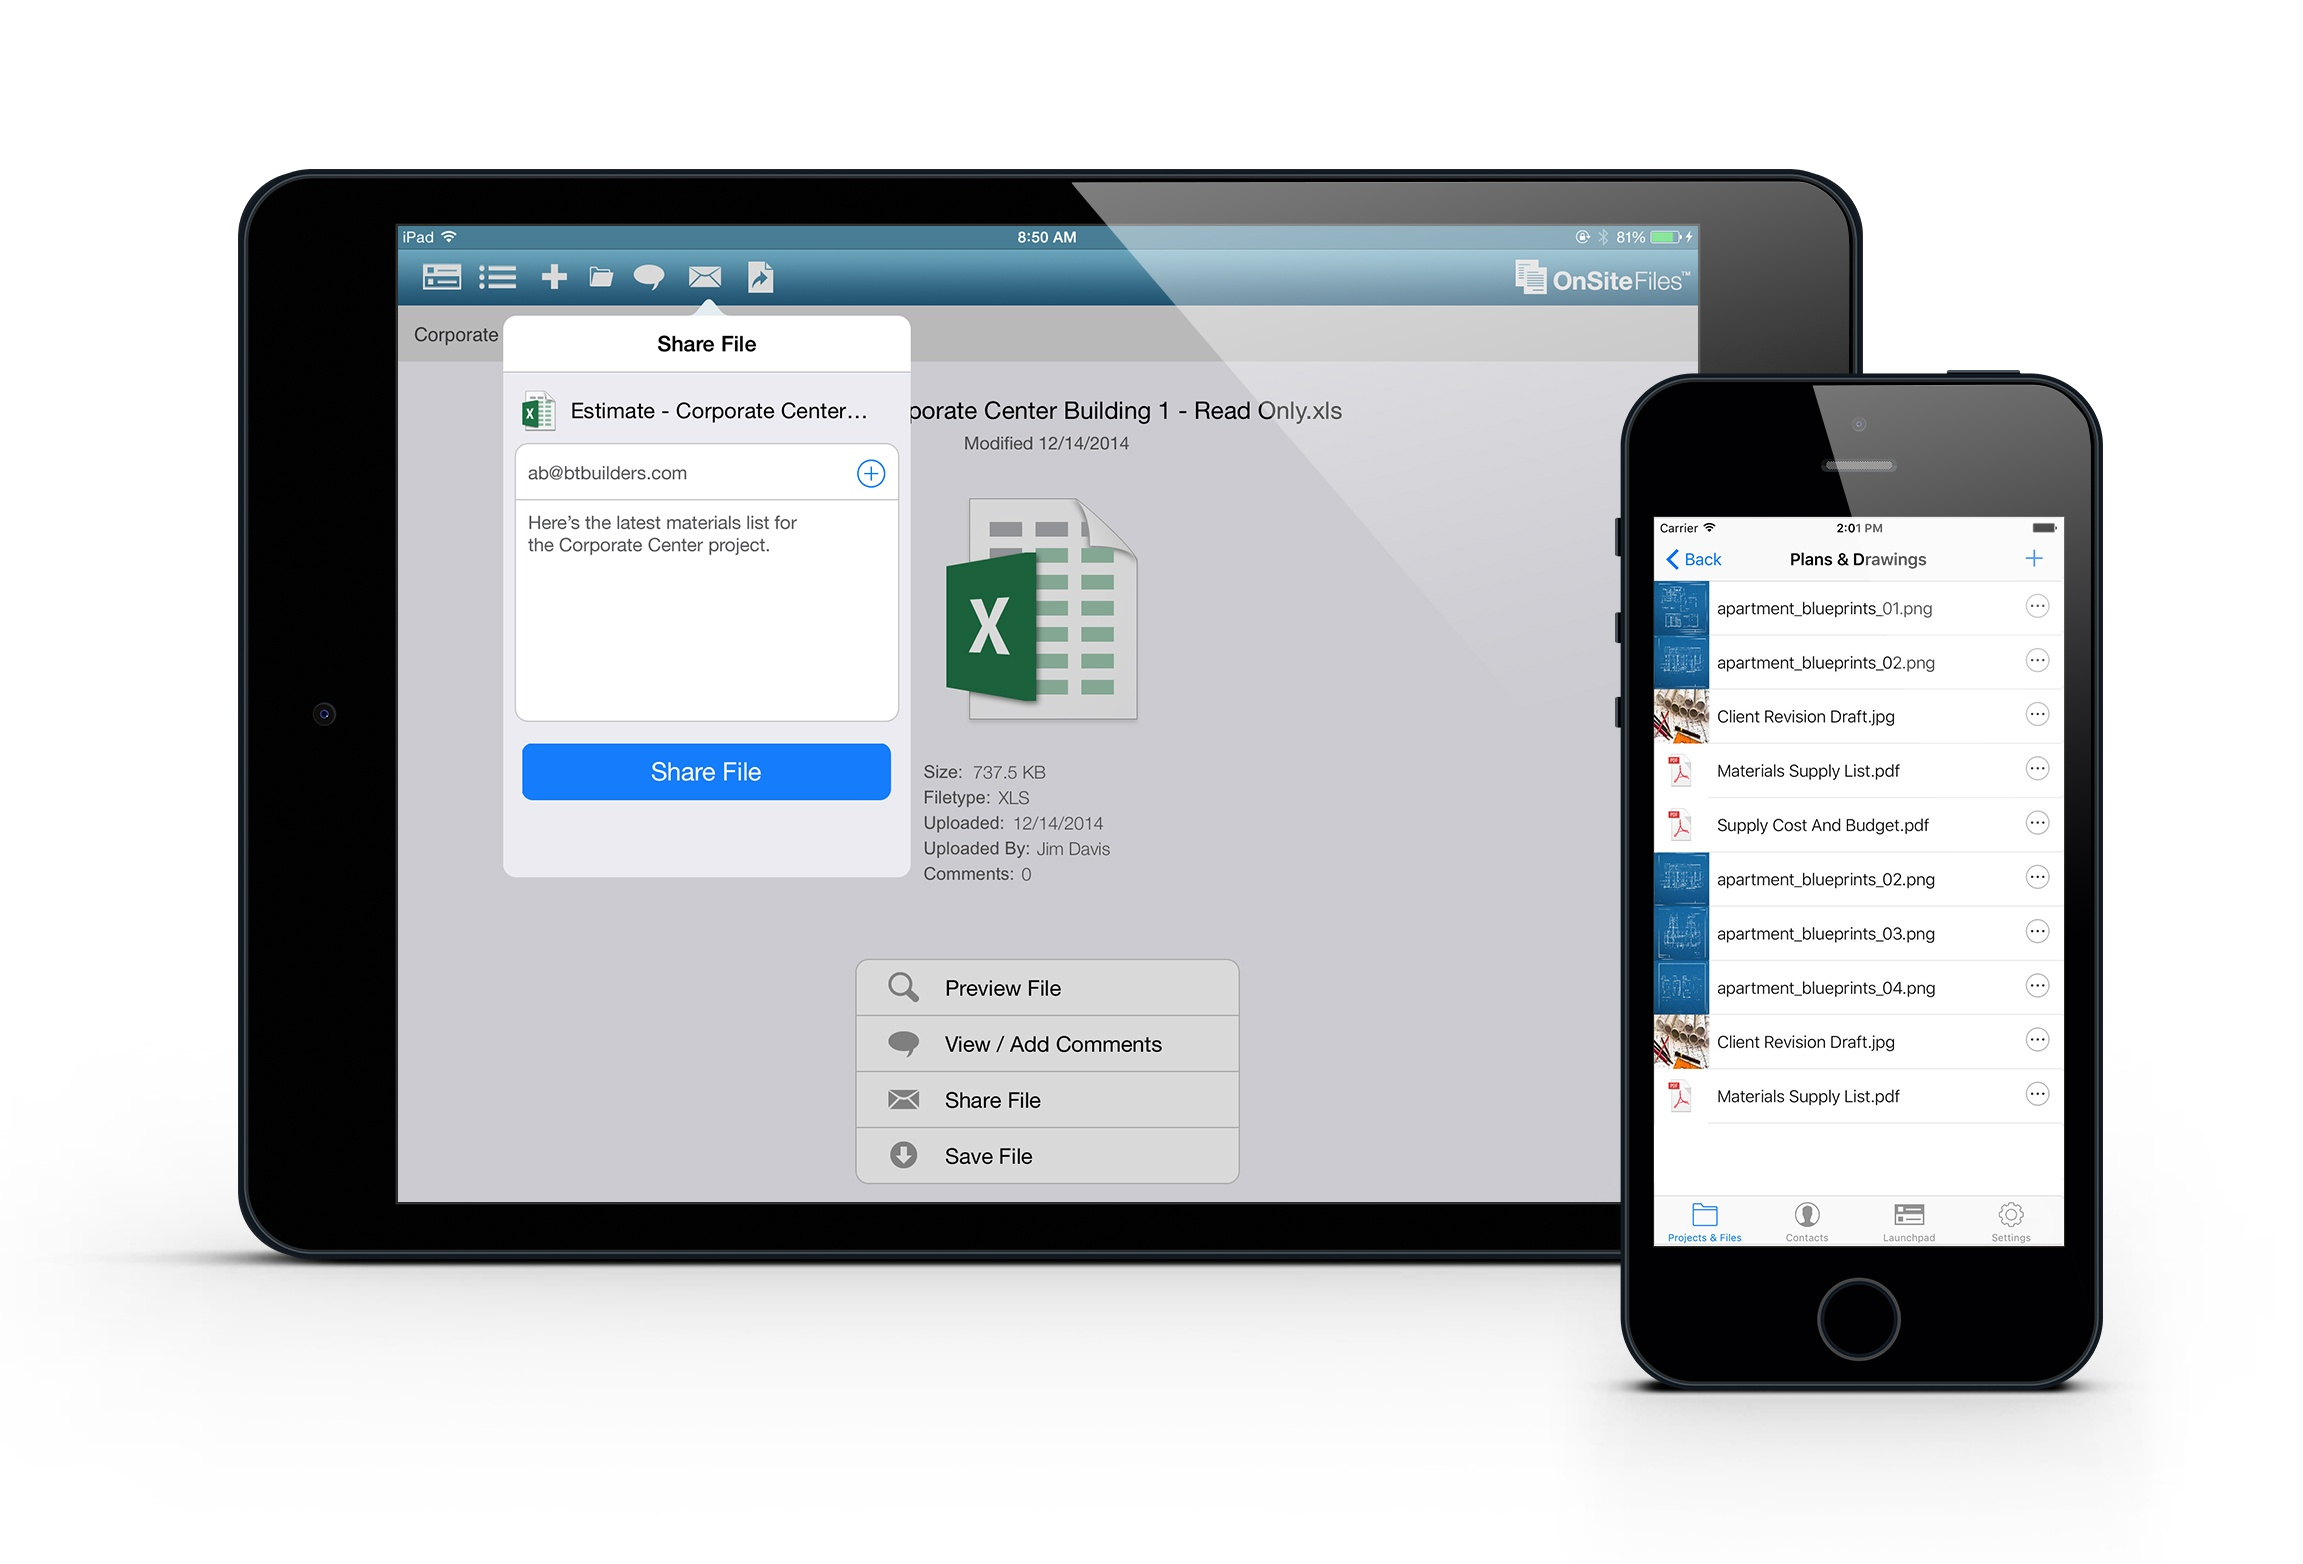 OnSite Files - Mobile App for Construction Documents